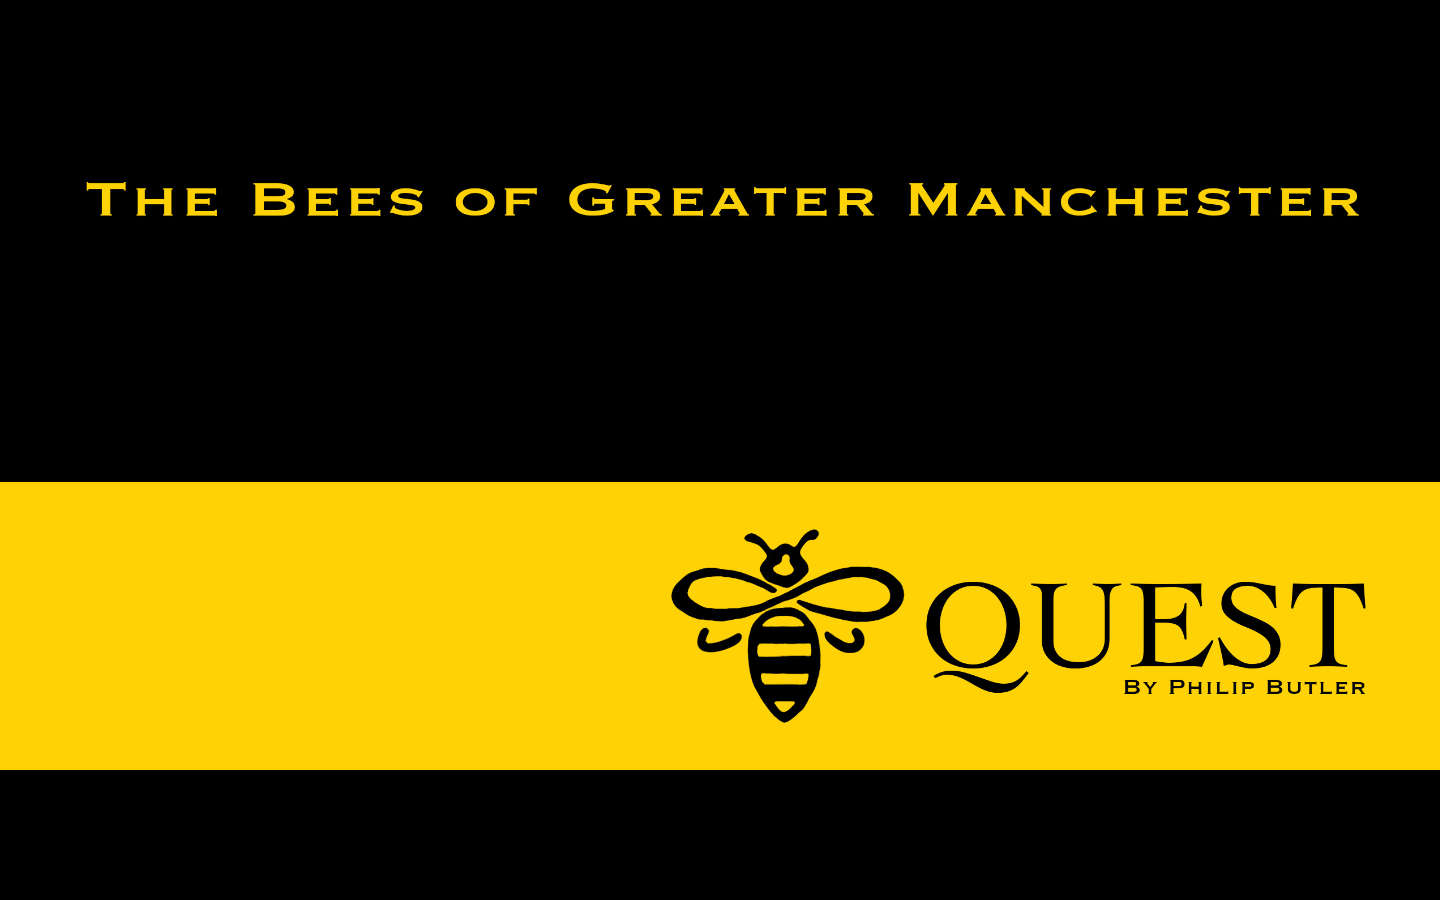 Bee Quest The Bees of Greater Manchester by Manchester based website developer Philip Butler